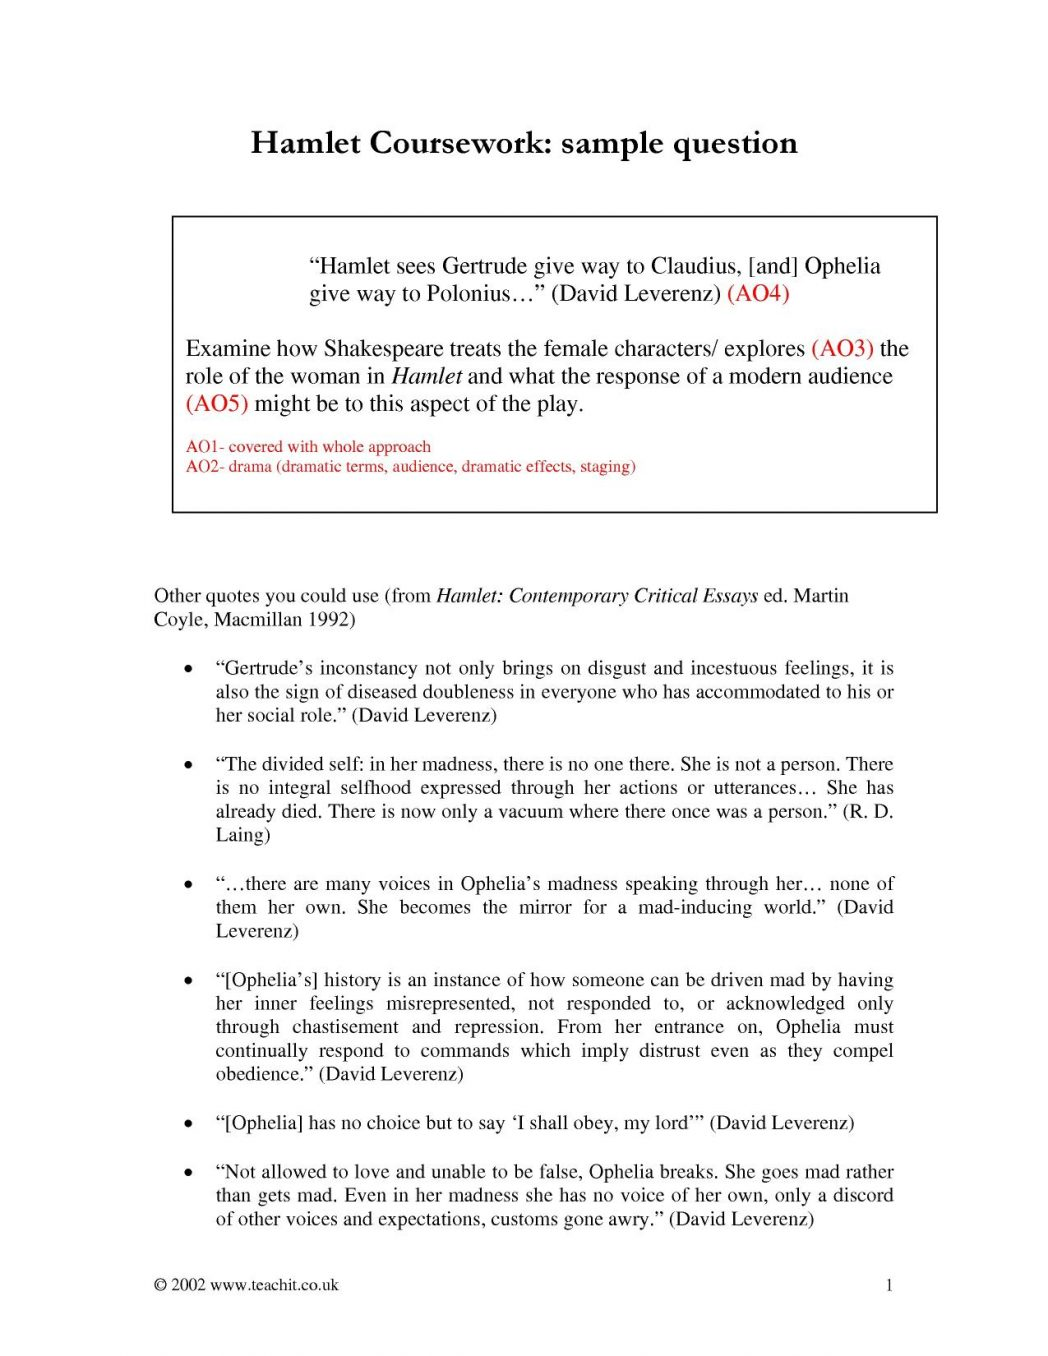 015 Revenge Essay Example Hamlet On Topics Outline Outstanding Frankenstein Prompt Tragedy Full